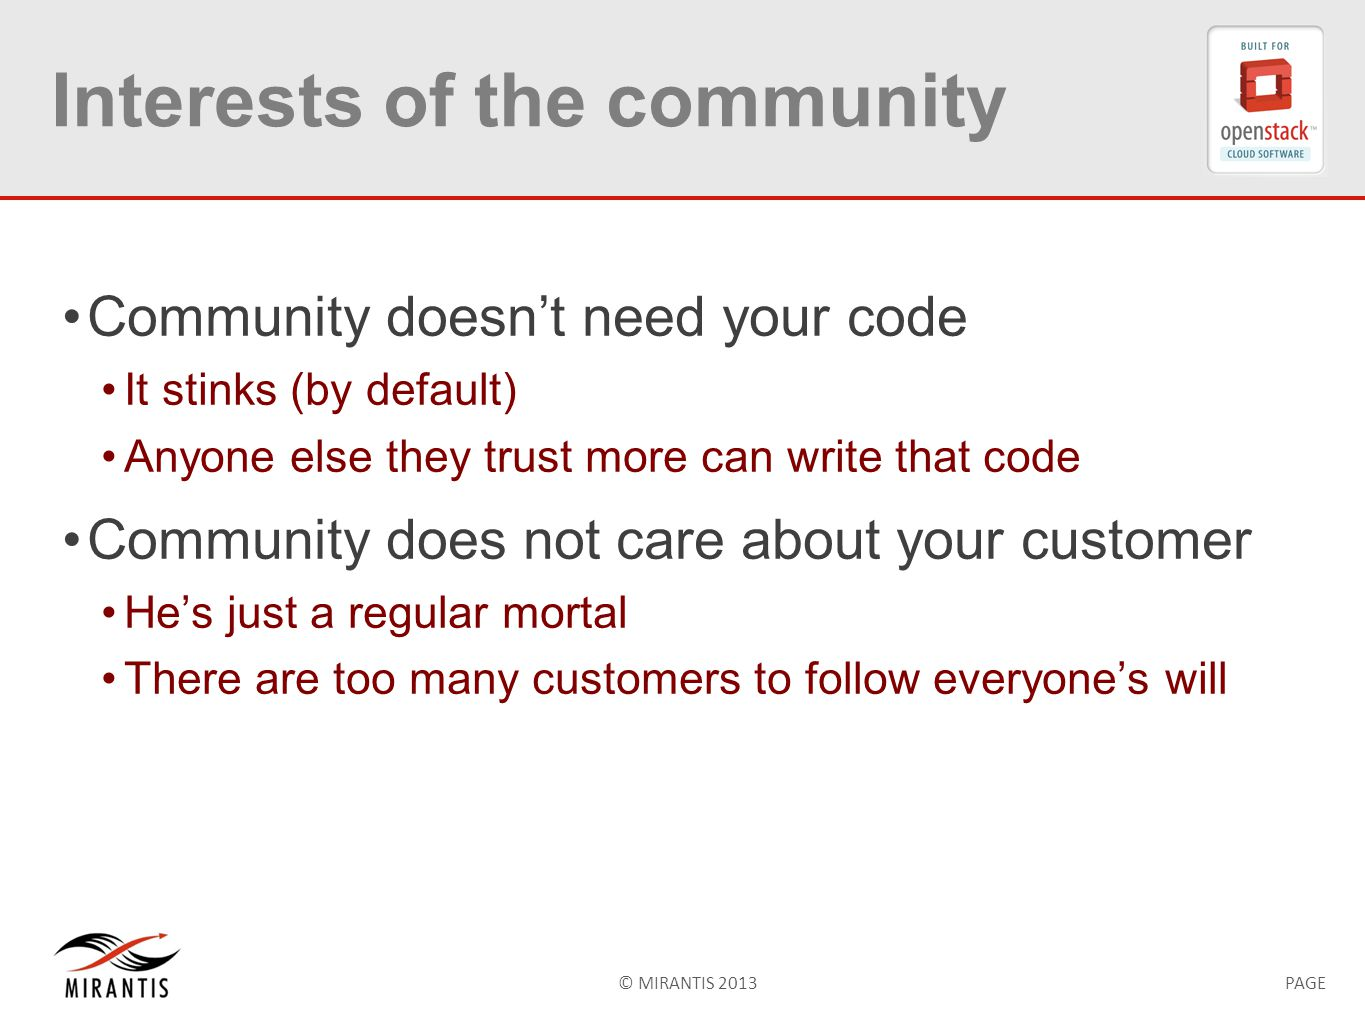 © MIRANTIS 2013PAGE Interests of the community Community doesn't need your code It stinks (by default) Anyone else they trust more can write that code Community does not care about your customer He's just a regular mortal There are too many customers to follow everyone's will